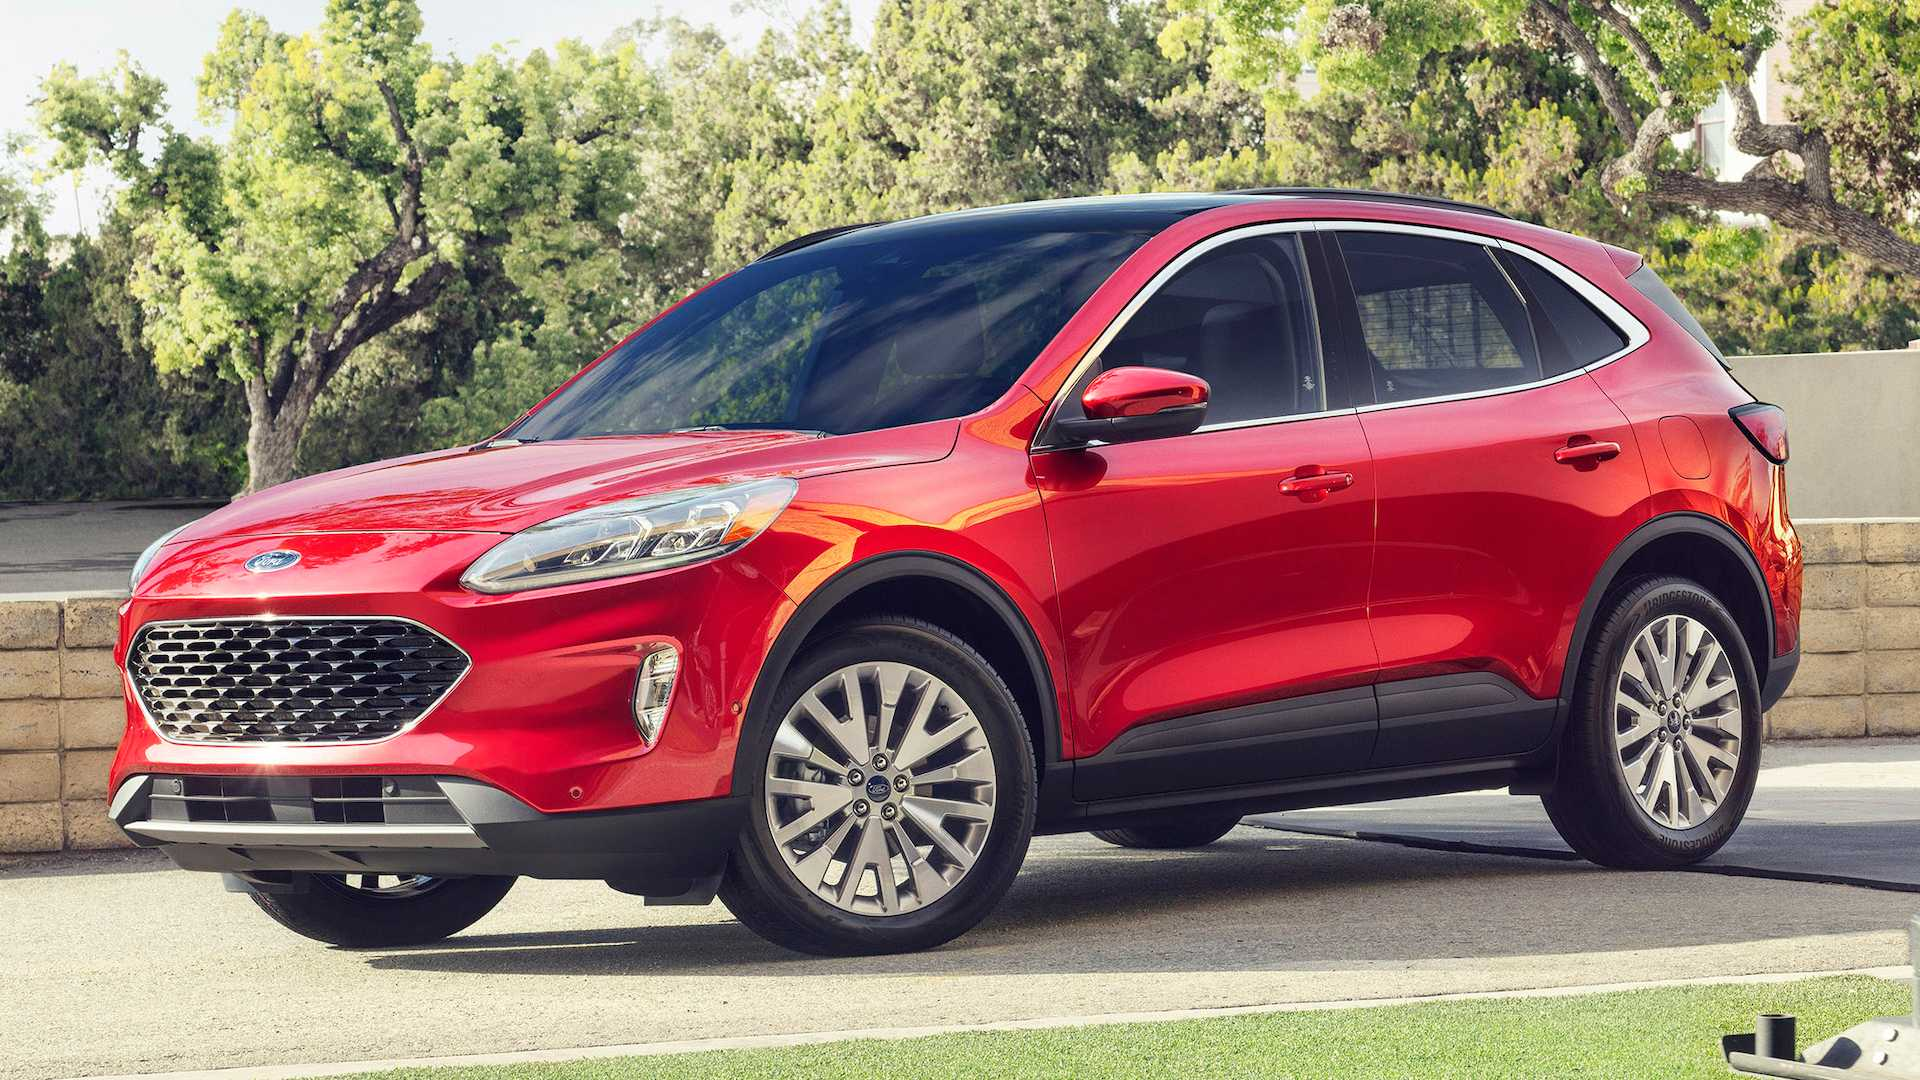 2021 Ford Escape Models And All Prices >> 2020 Ford Escape Pricing Revealed With Small Increase